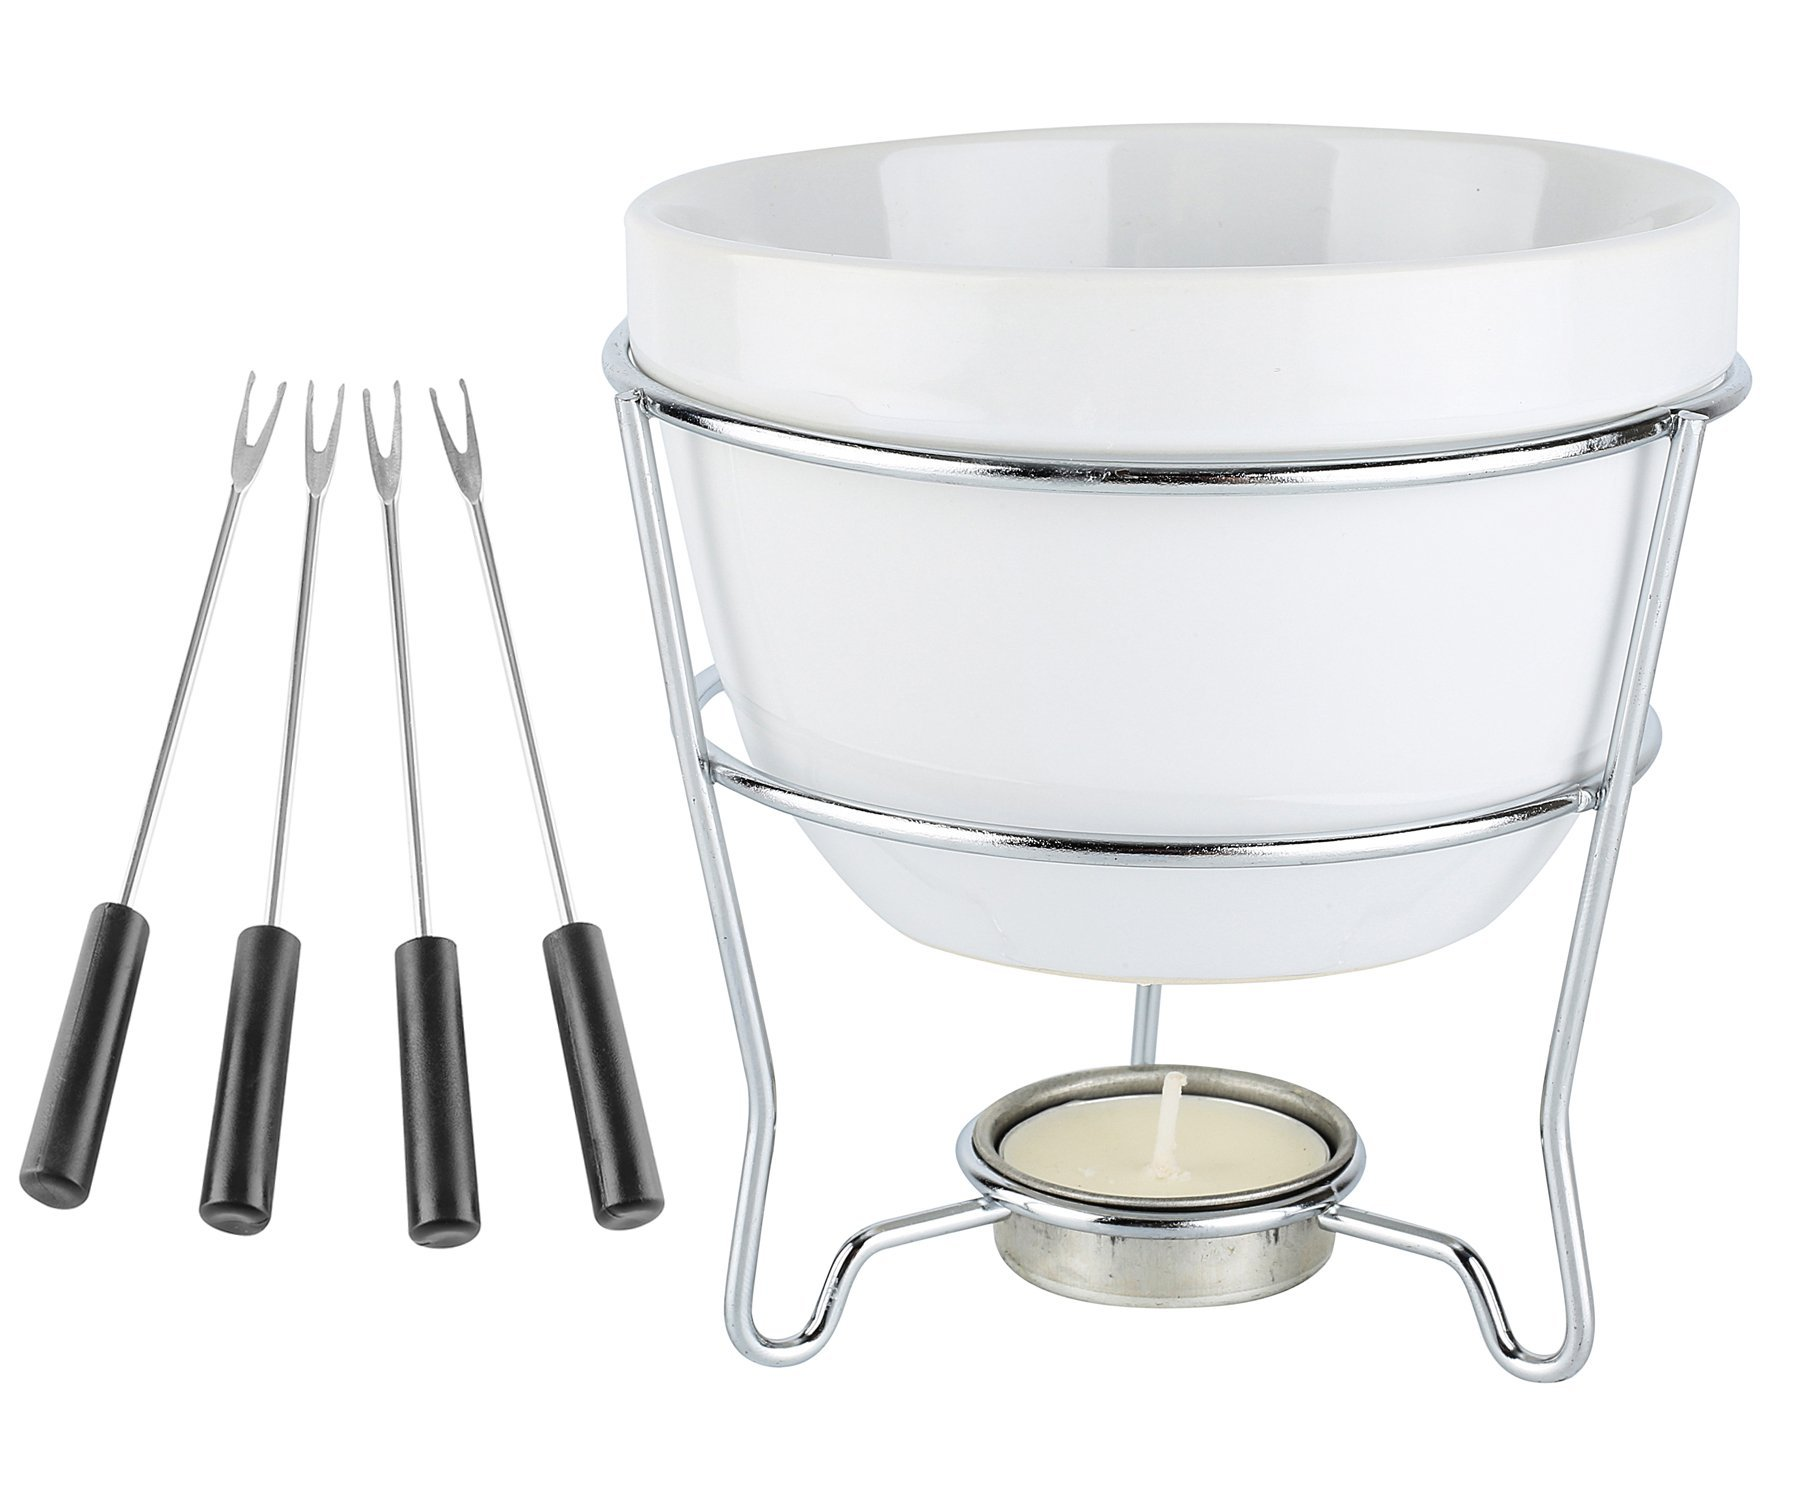 Home Essentials Home Essentials & Beyond 73024 White Chocolate Fondue Set In Color Box 5 D in, White